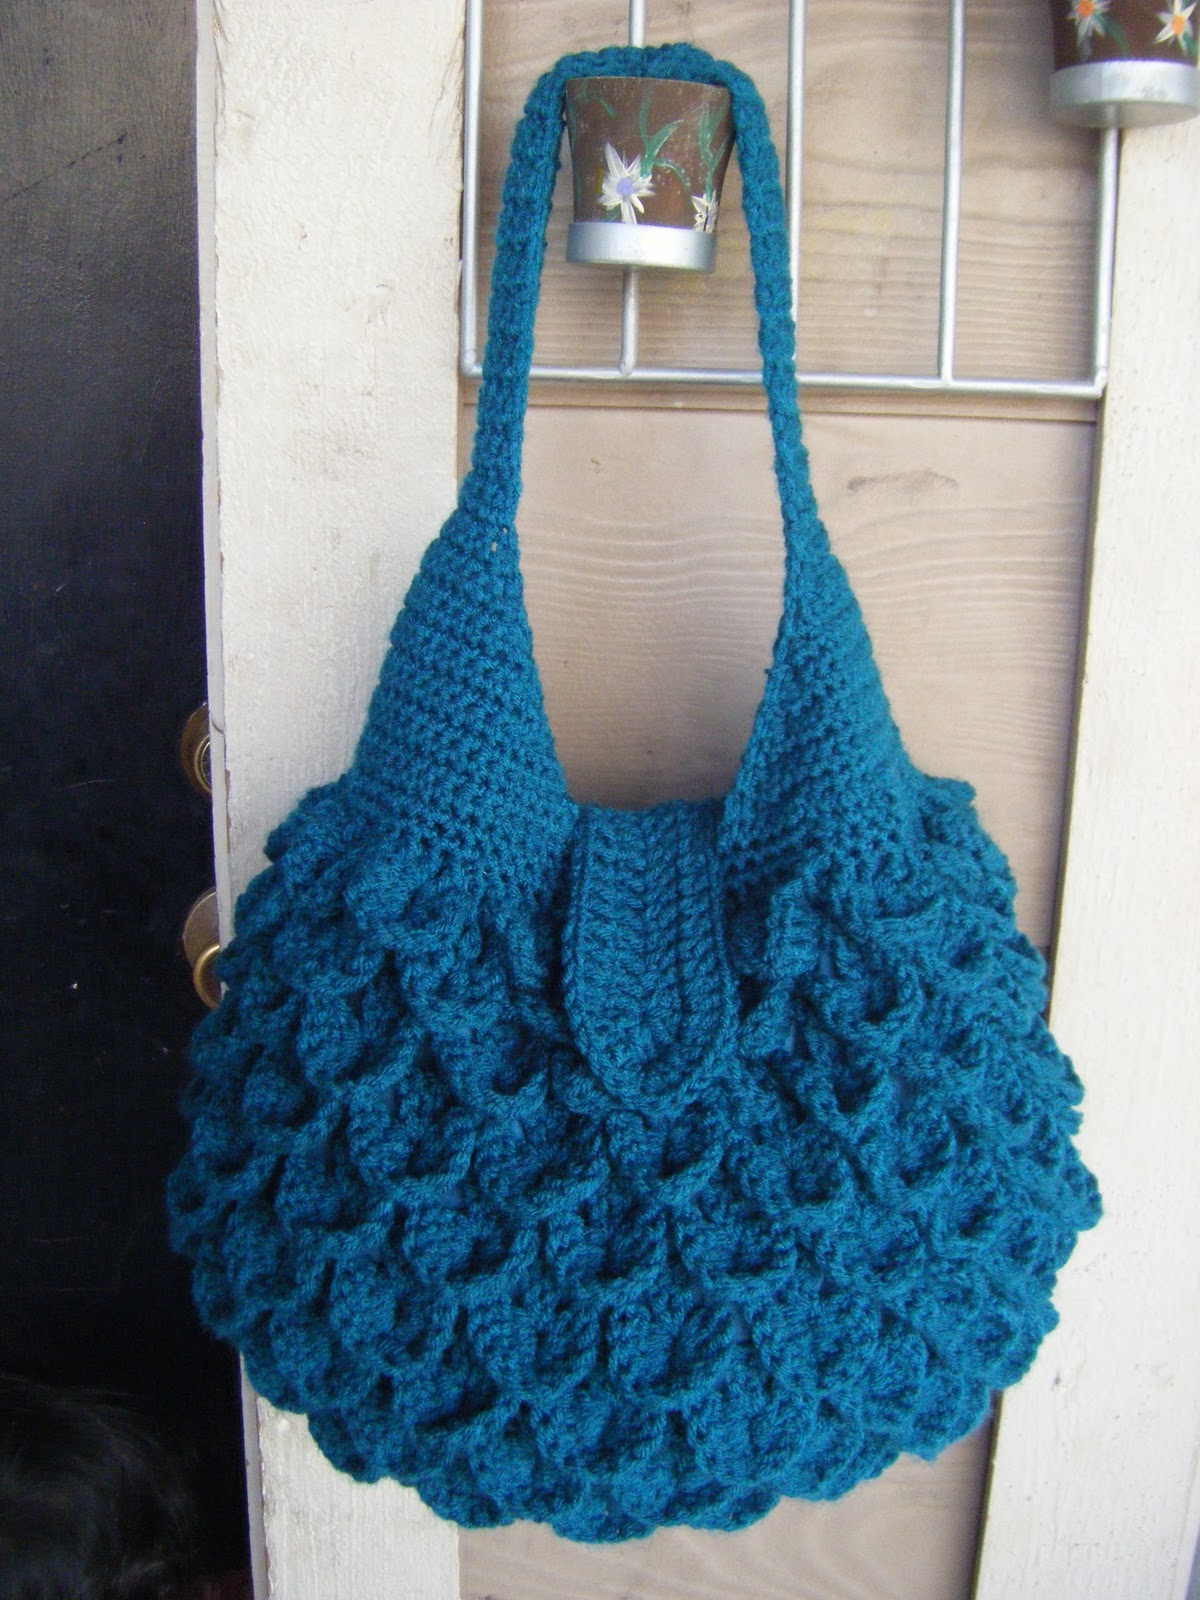 Free Crochet Purse And Bag Patterns : Free Pattern - Crochet Drawstring Bag Free Pattern Tutorial